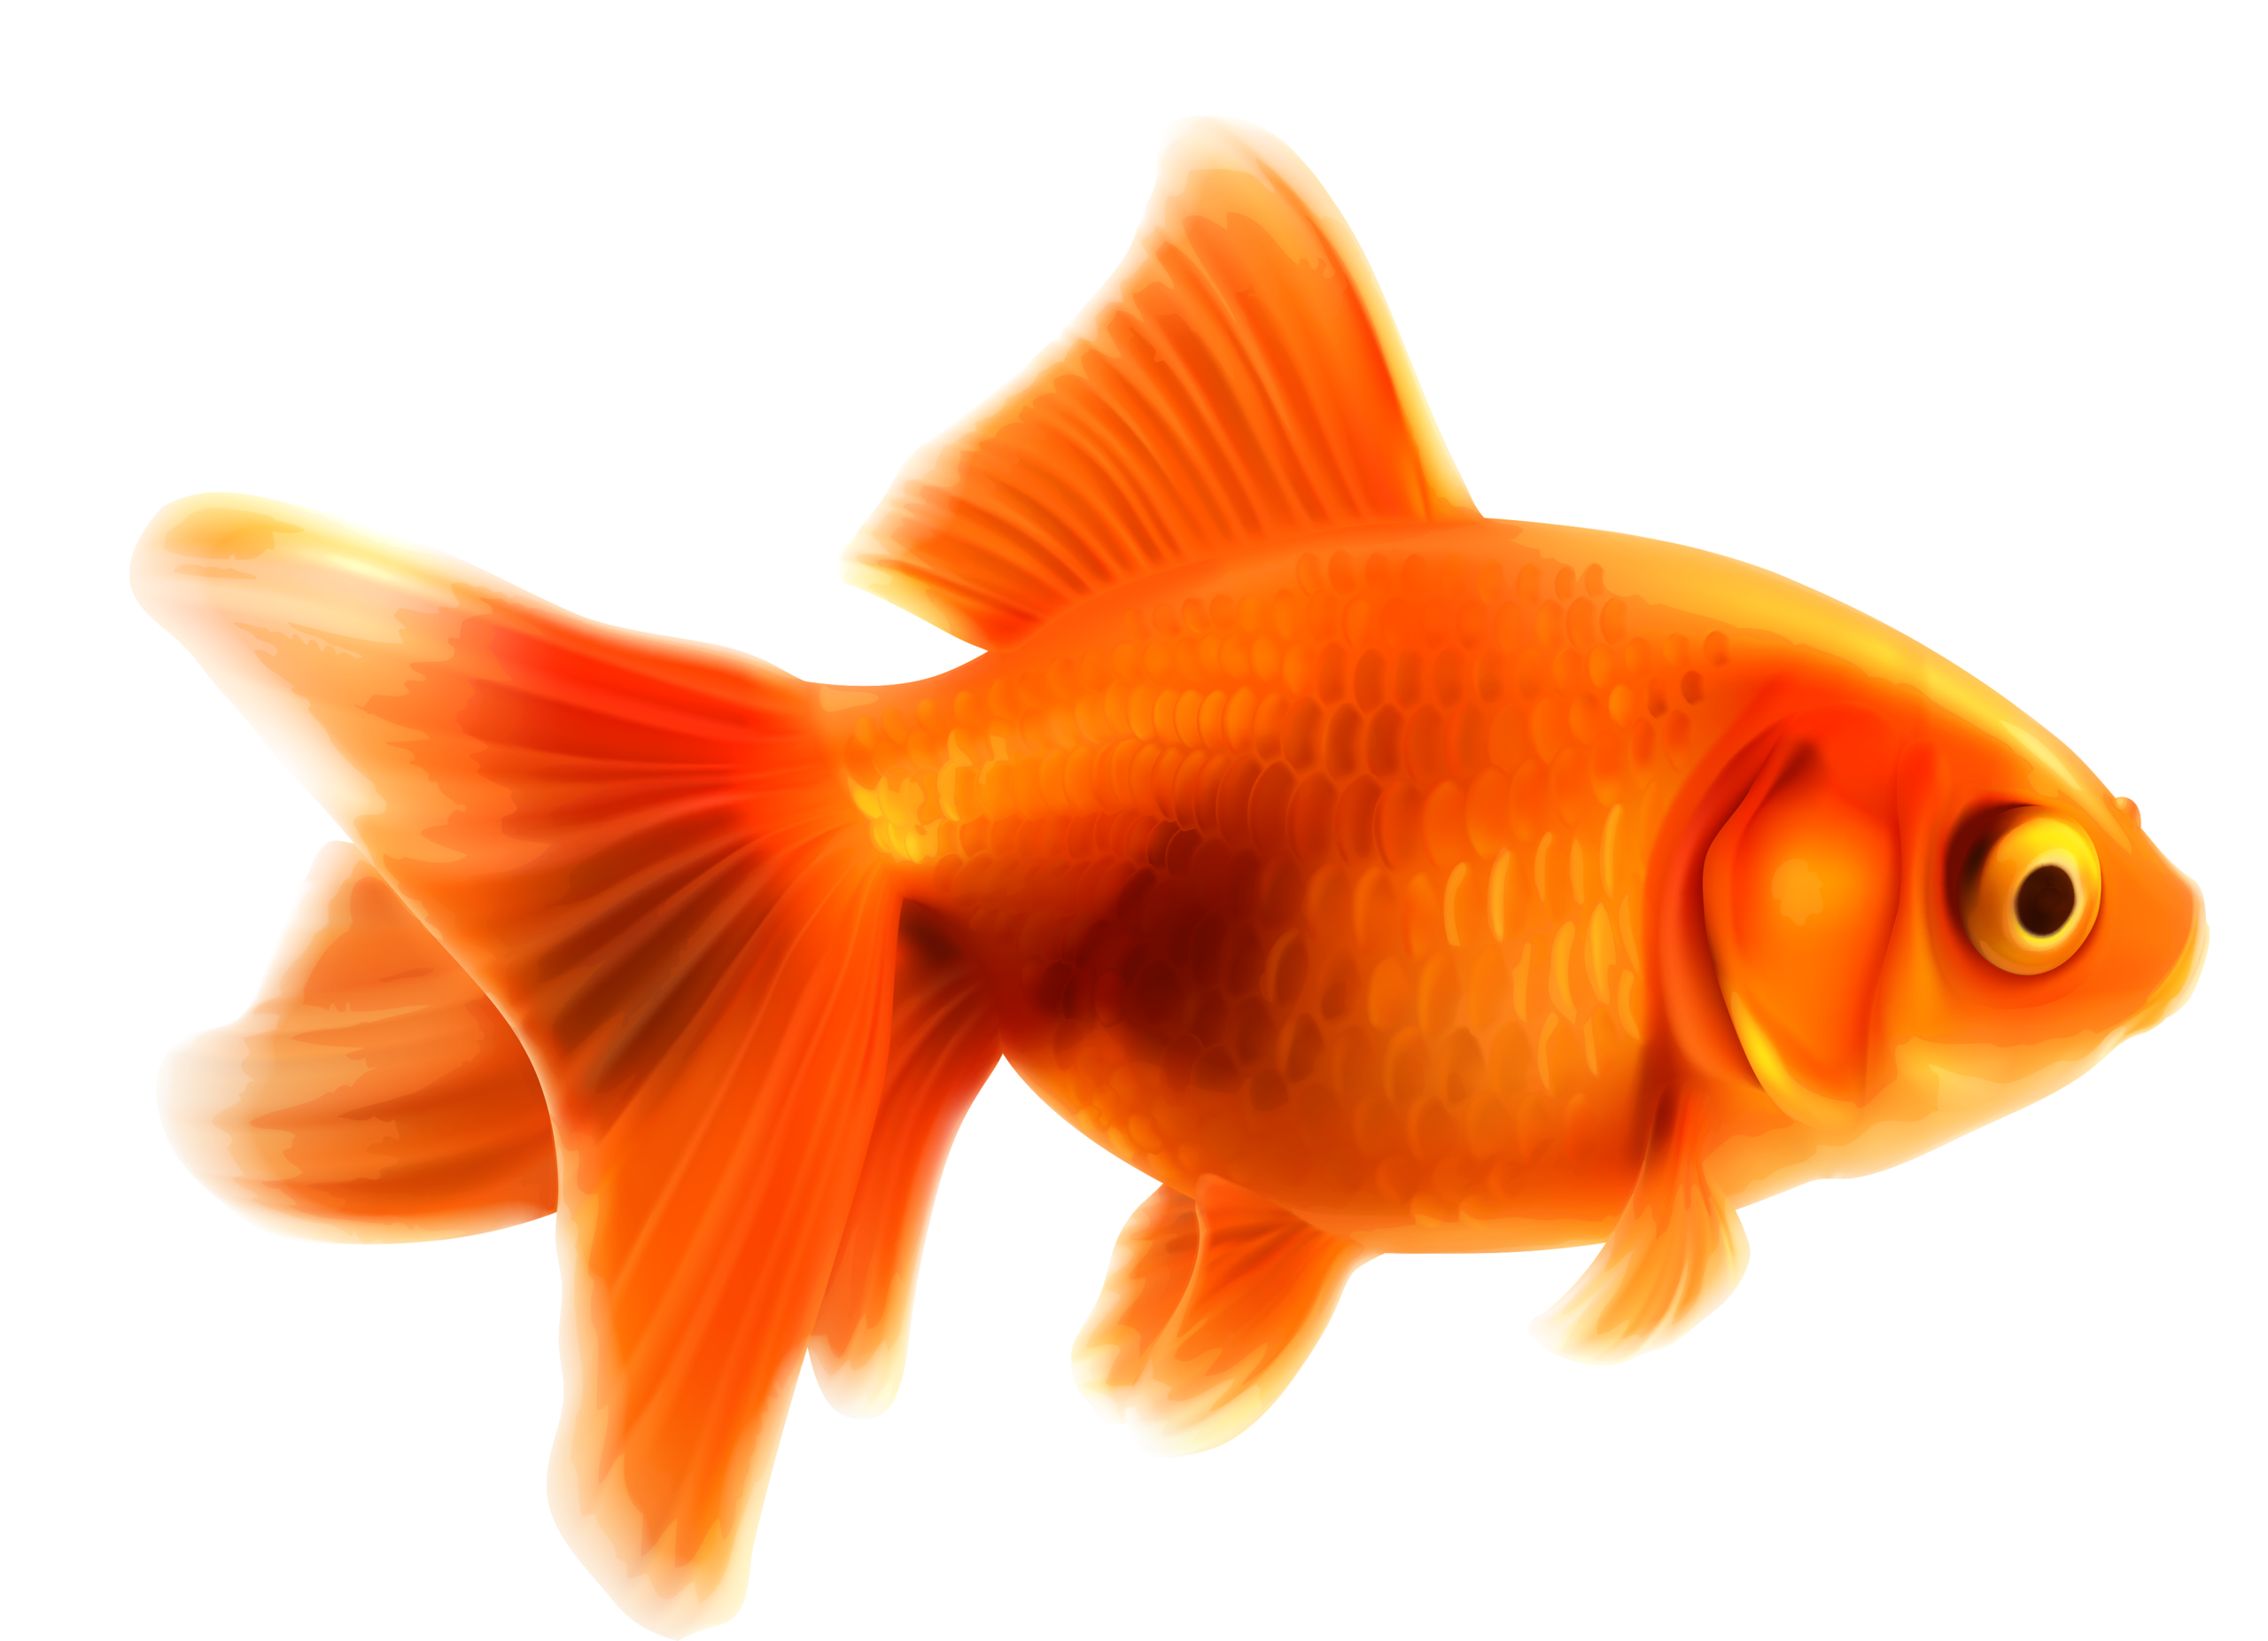 Gold Fish Png Free Gold Fish Png Transparent Images 44003 Pngio